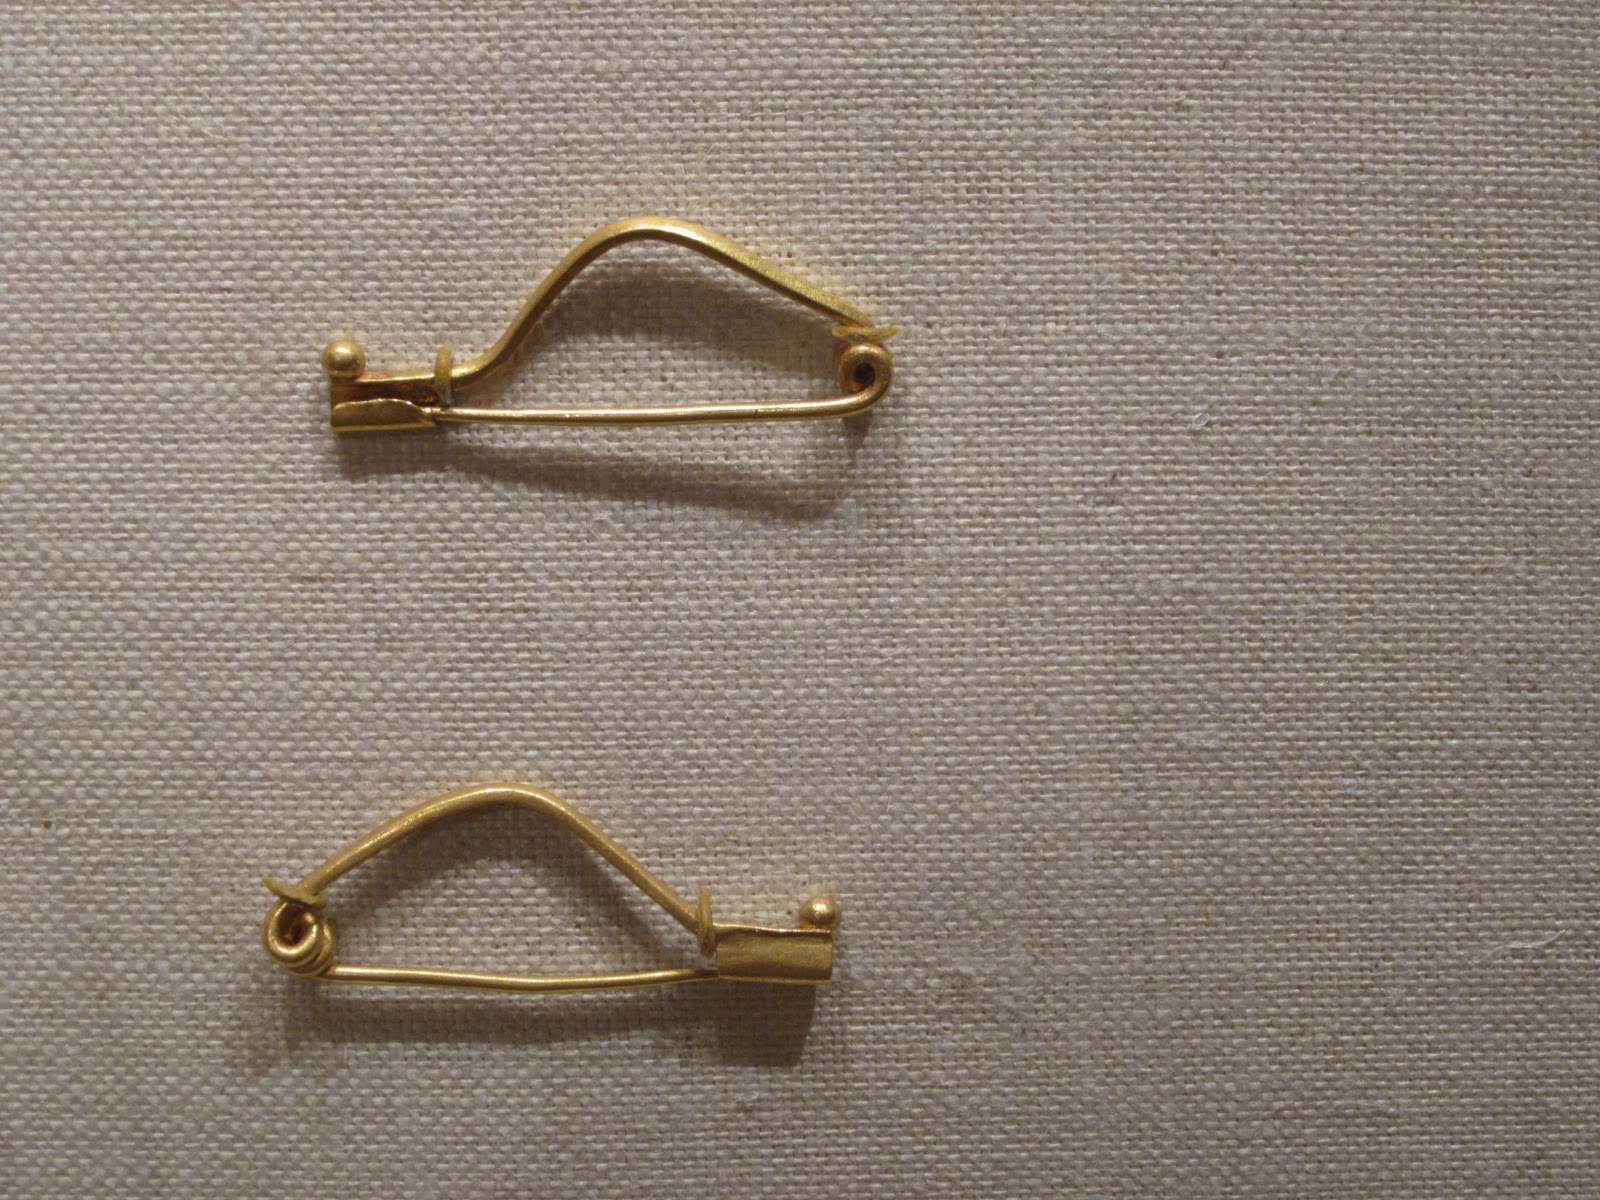 Lock and Spoon: Ancient Jewelry